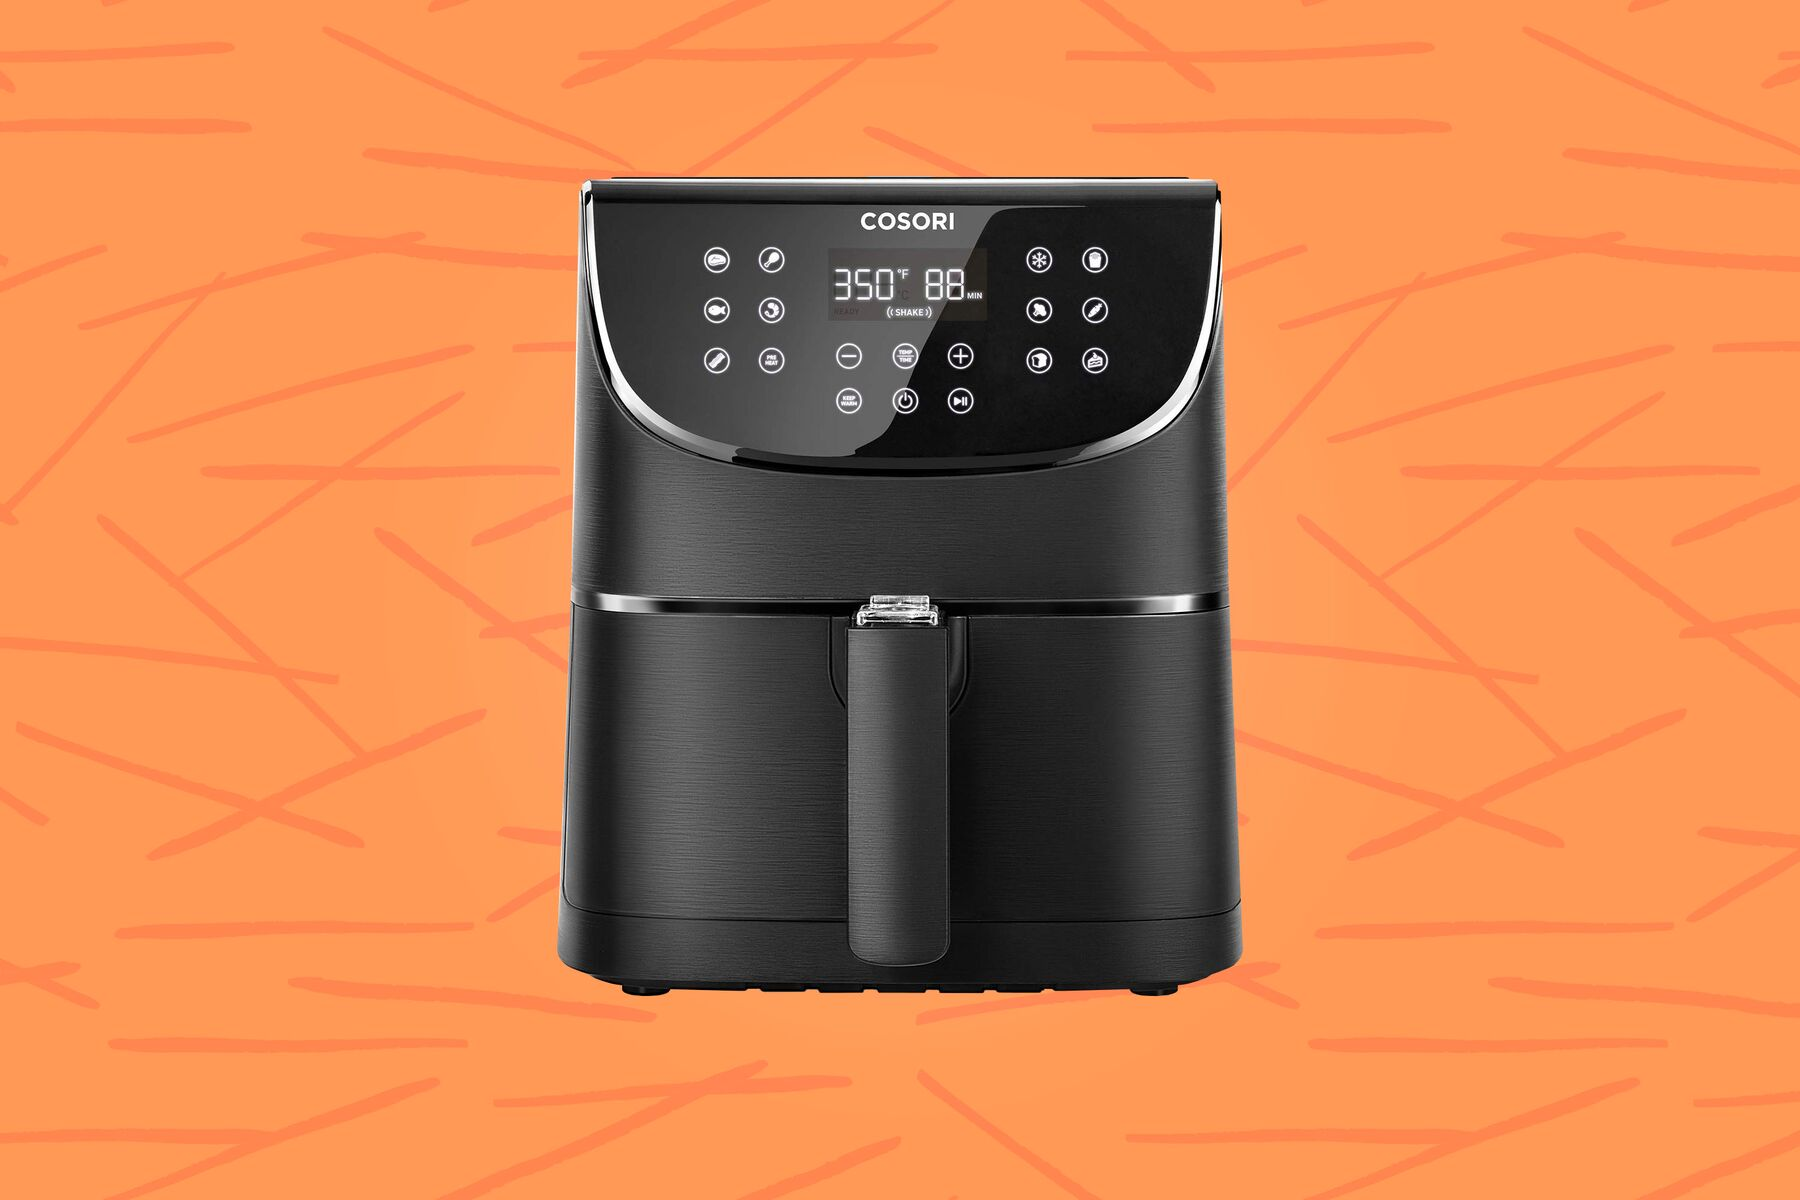 Stellar deals on small kitchen appliances during Prime Day